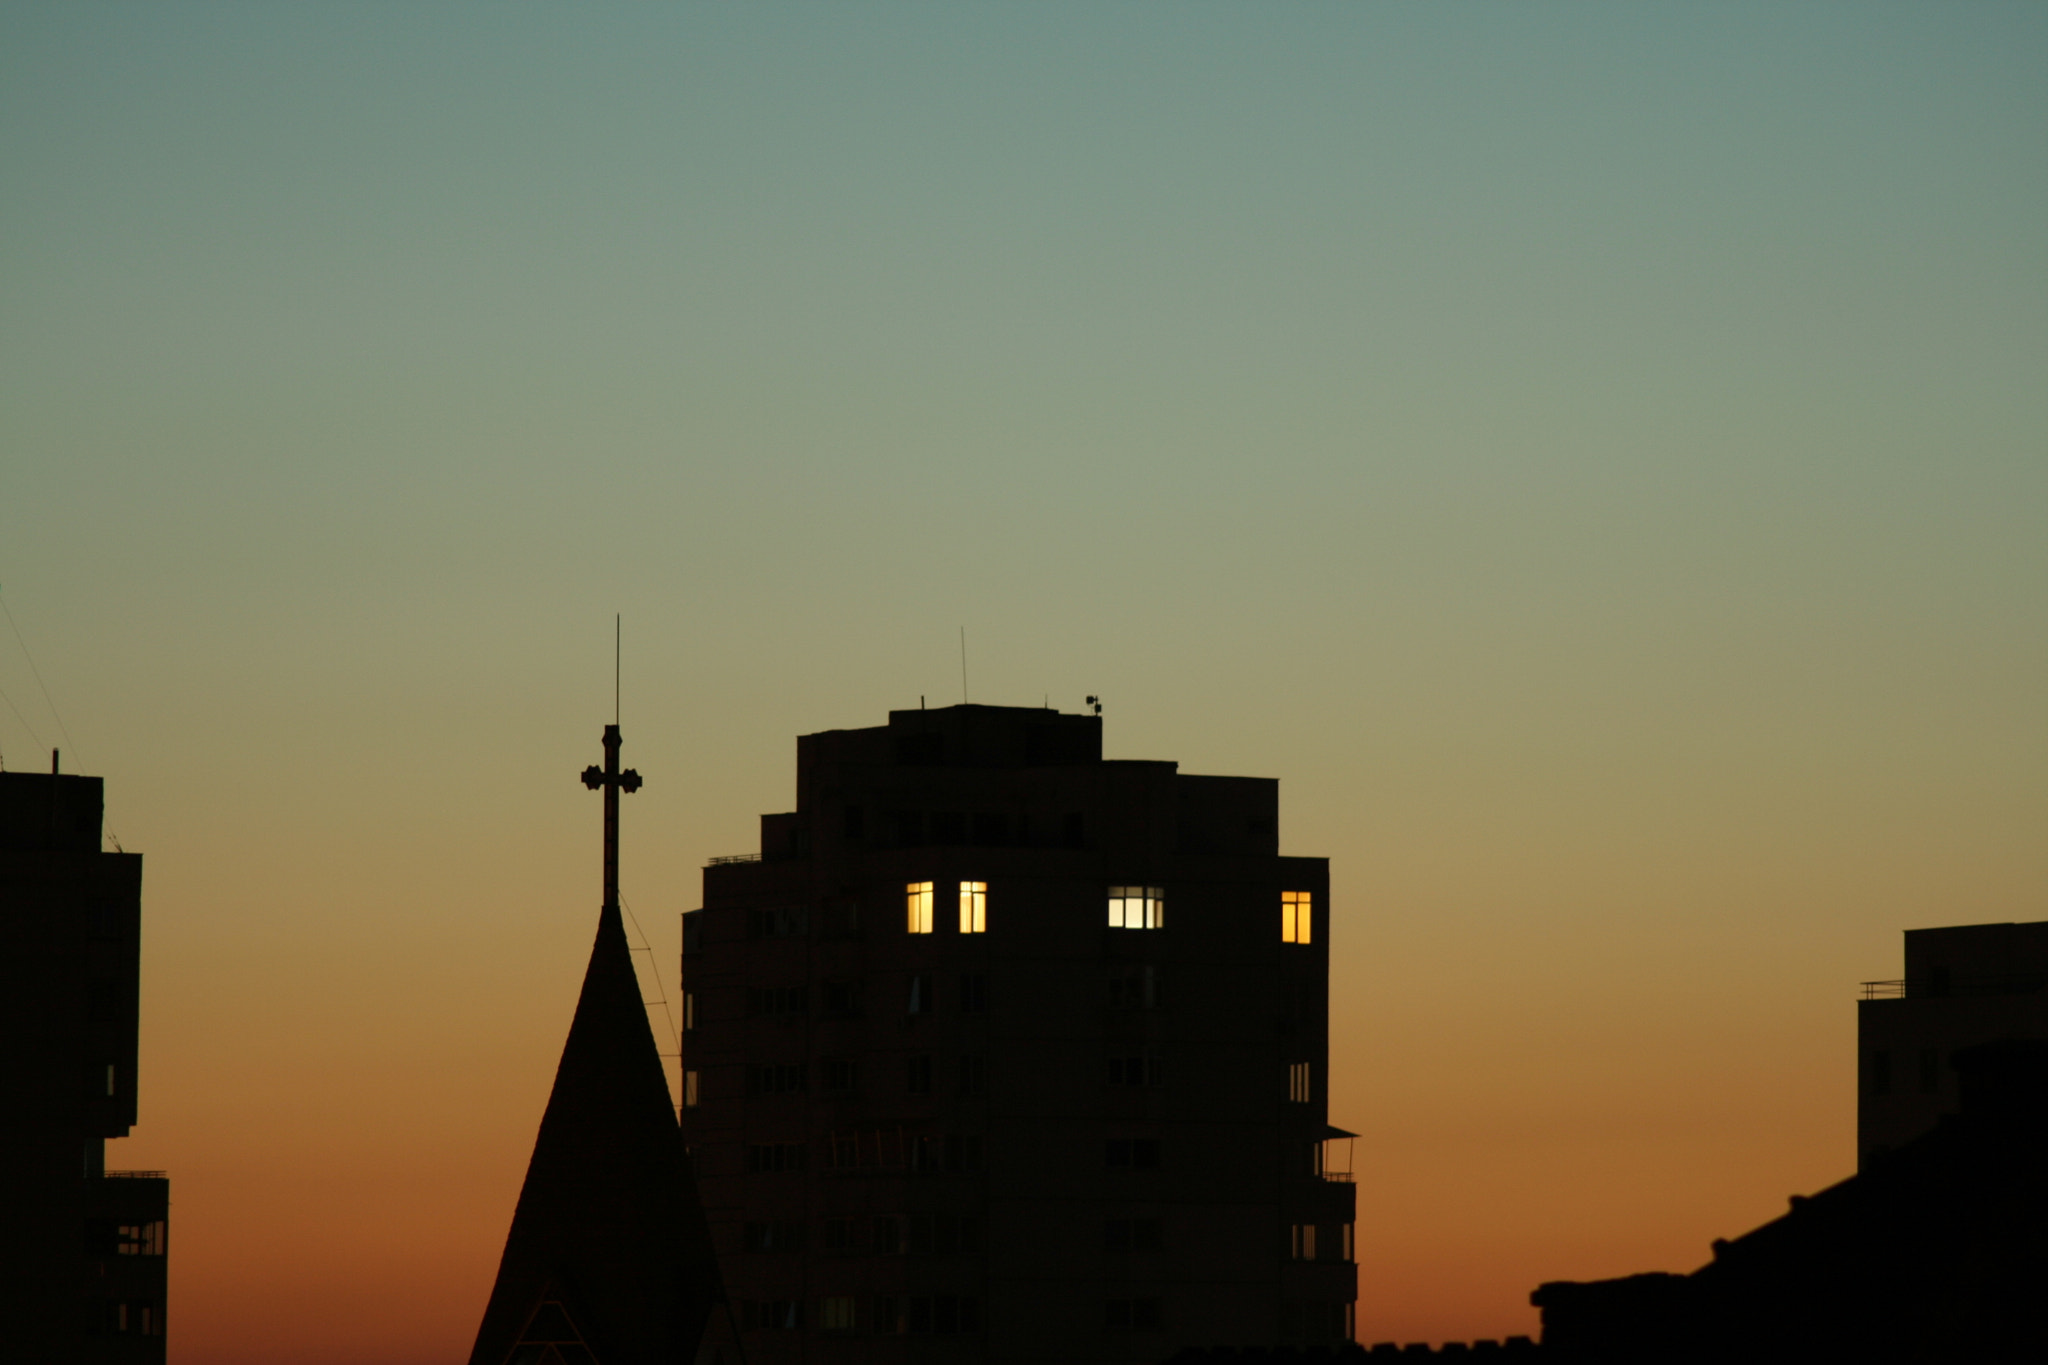 Photograph City dusk by Marius Popescu on 500px